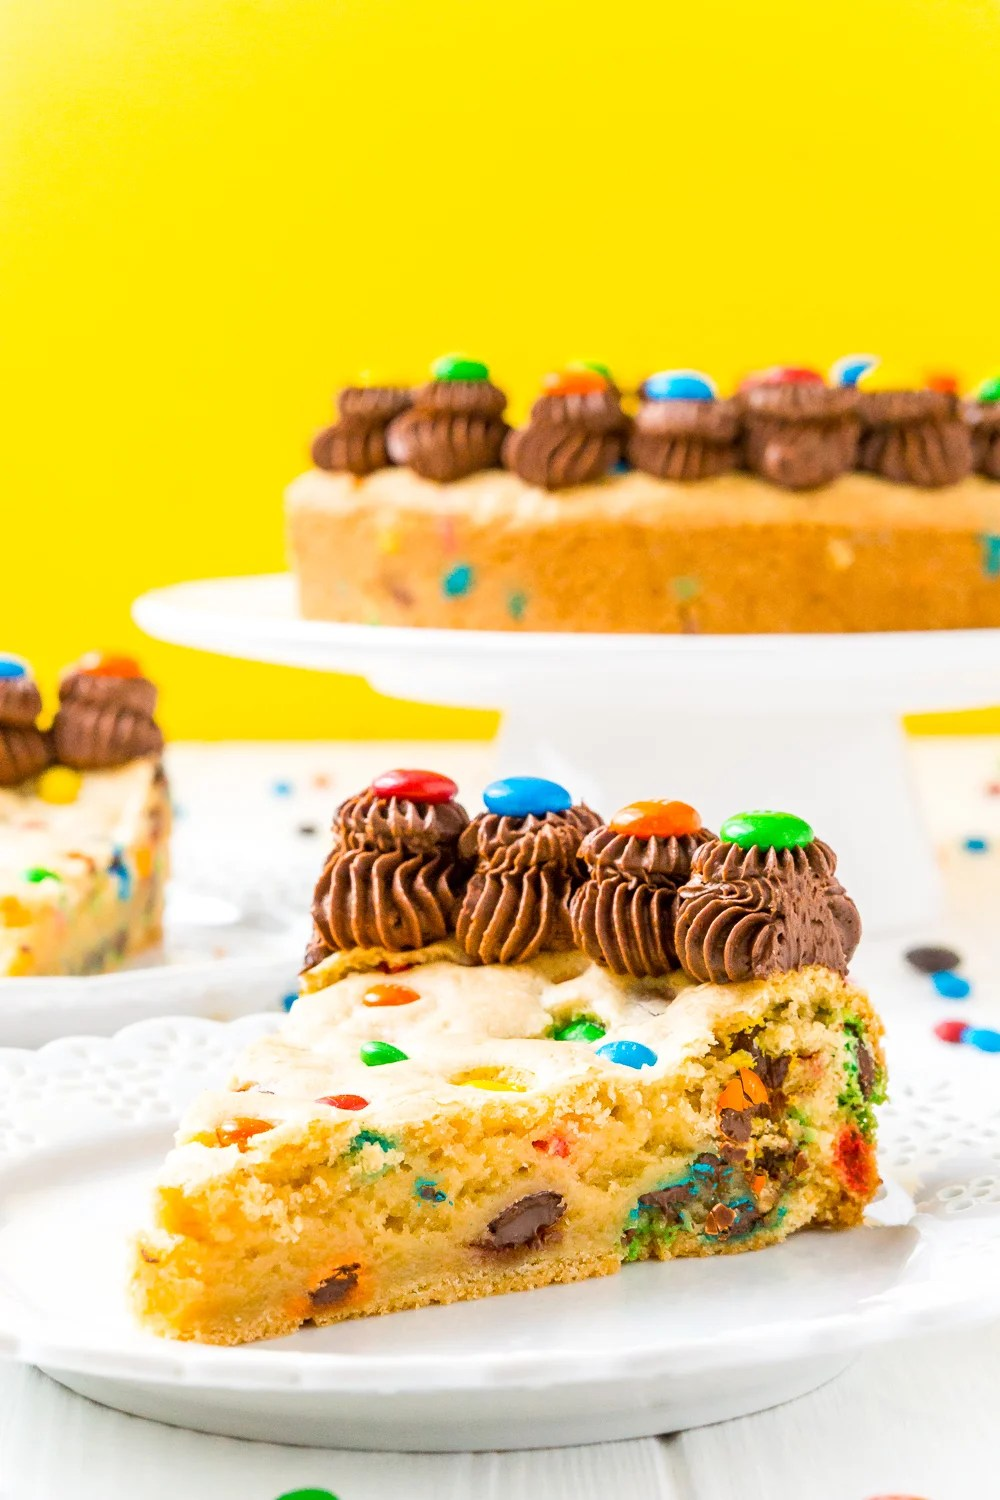 Slice of M&M's Cookie Cake on white plate with rest of cake in the background.